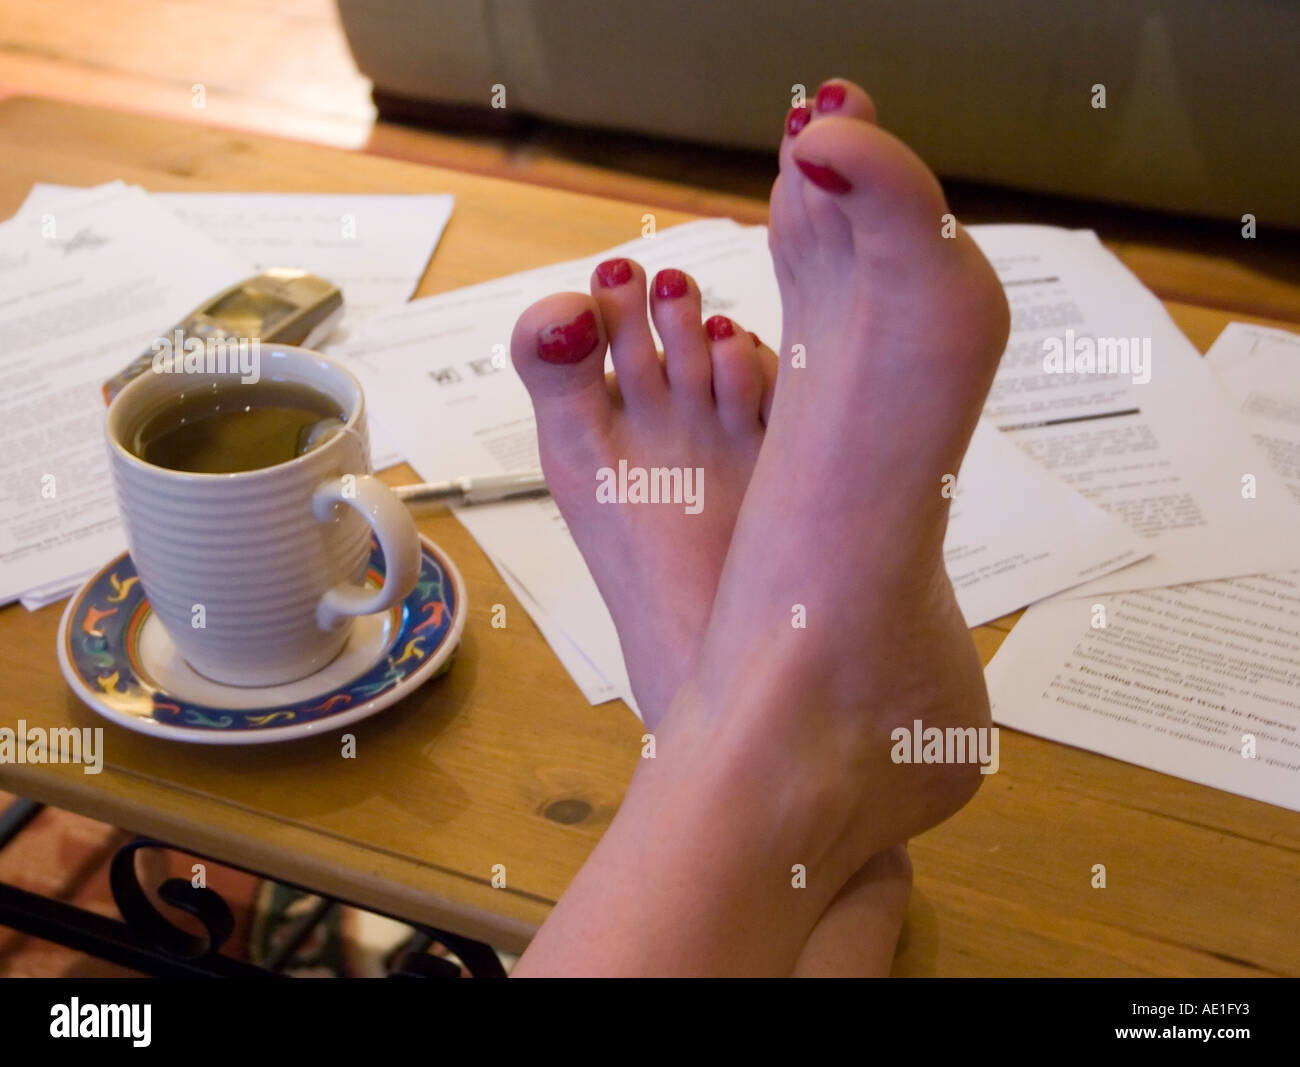 https://c8.alamy.com/comp/AE1FY3/feet-with-red-painted-toe-nails-on-coffee-table-with-cup-papers-and-AE1FY3.jpg